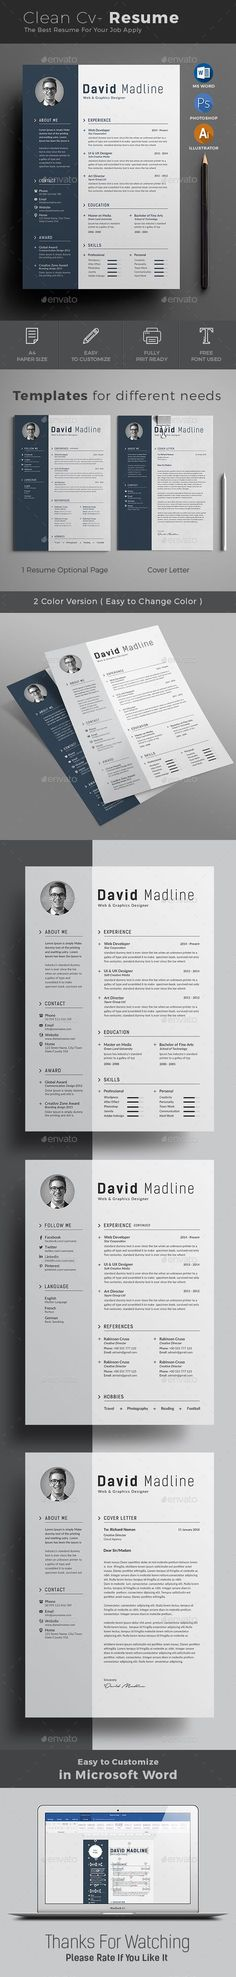 #Resume - Resumes #Stationery Download here: https://graphicriver.net/item/resume/19411154?ref=alena994